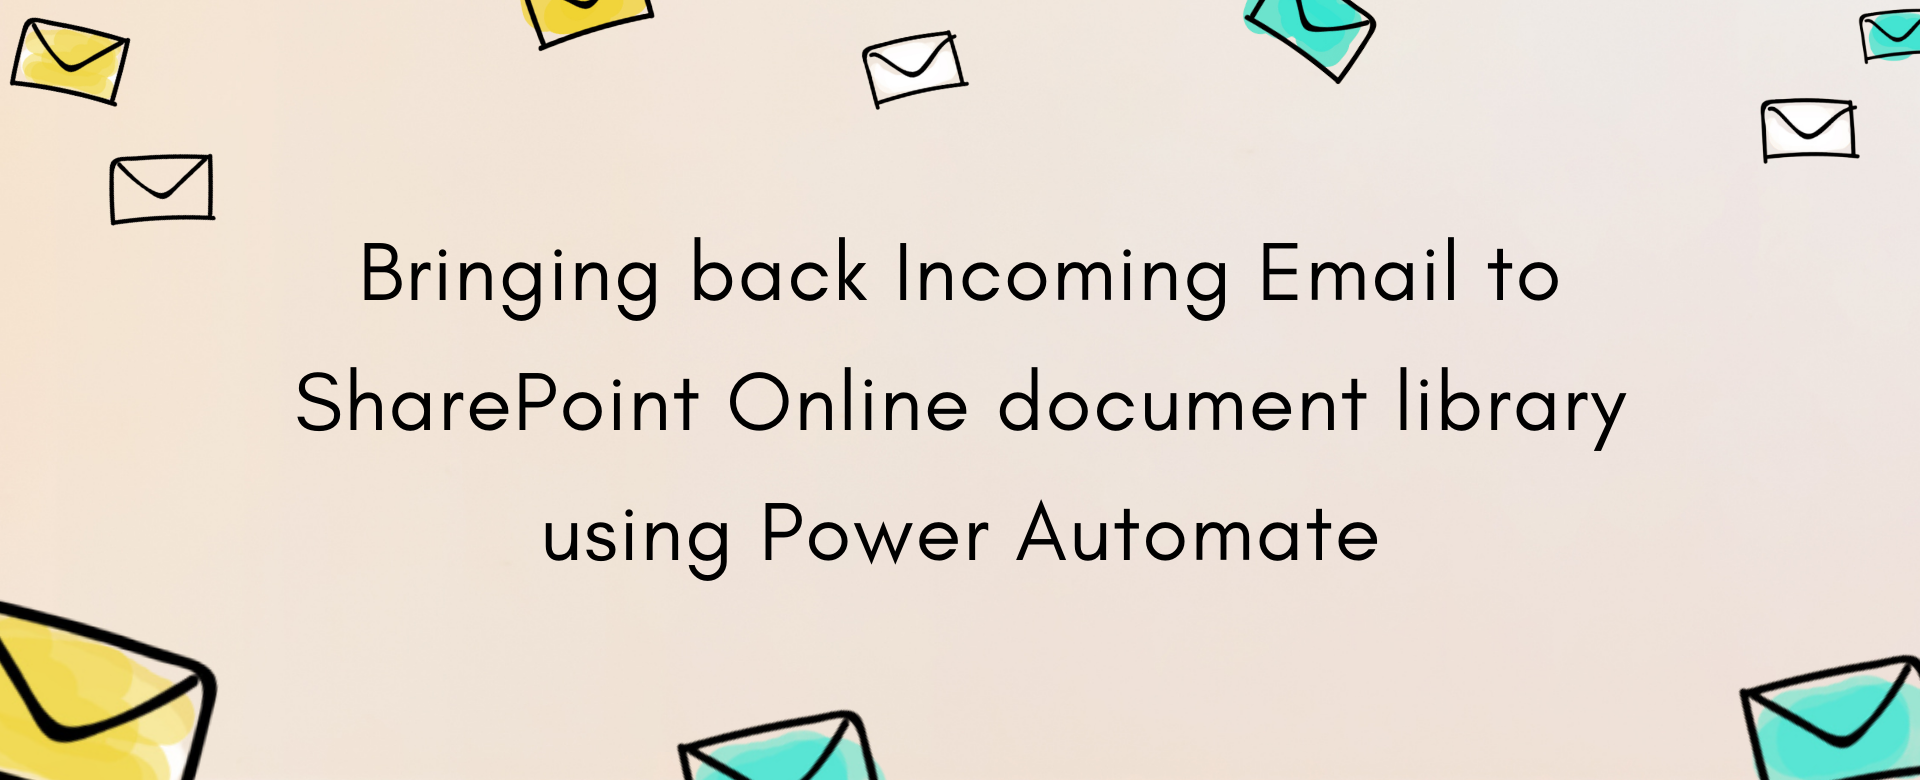 Bringing back Incoming Email to SharePoint Online document library using Power Automate